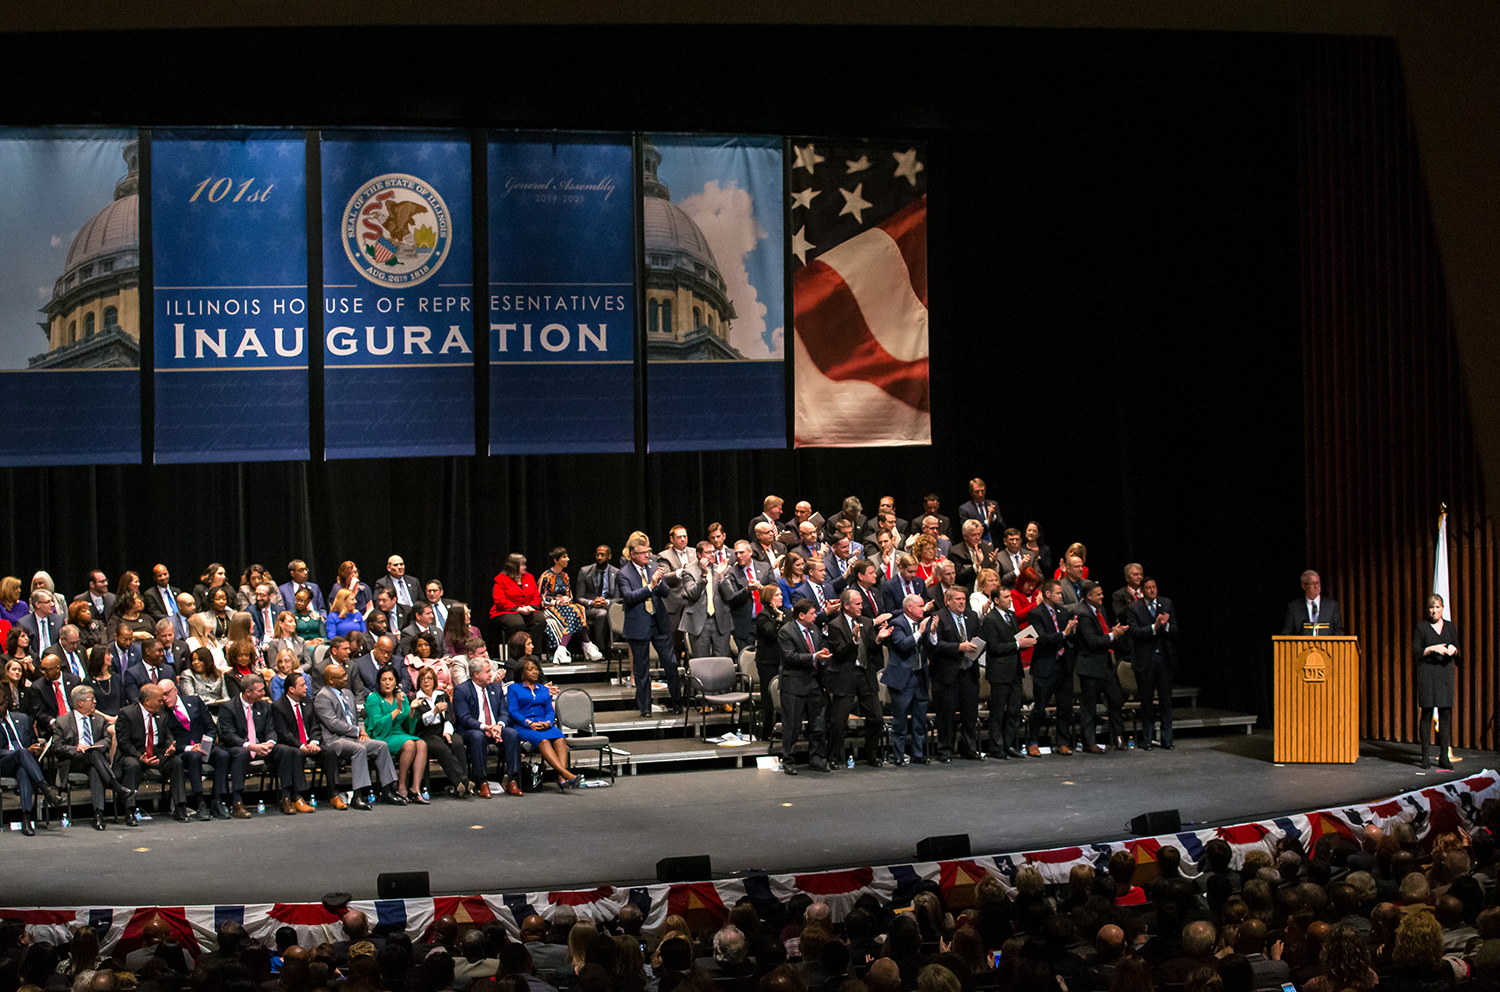 The Republican side of the aisle stand after Illinois House Minority Leader Jim Durkin, R-Western Springs, calls for non-partisan fair maps during the inauguration ceremony for the Illinois House of Representatives for the 101st General Assembly at the University of Illinois Springfield's Sangamon Auditorium, Wednesday, Jan. 9, 2019, in Springfield, Ill. [Justin L. Fowler/The State Journal-Register]